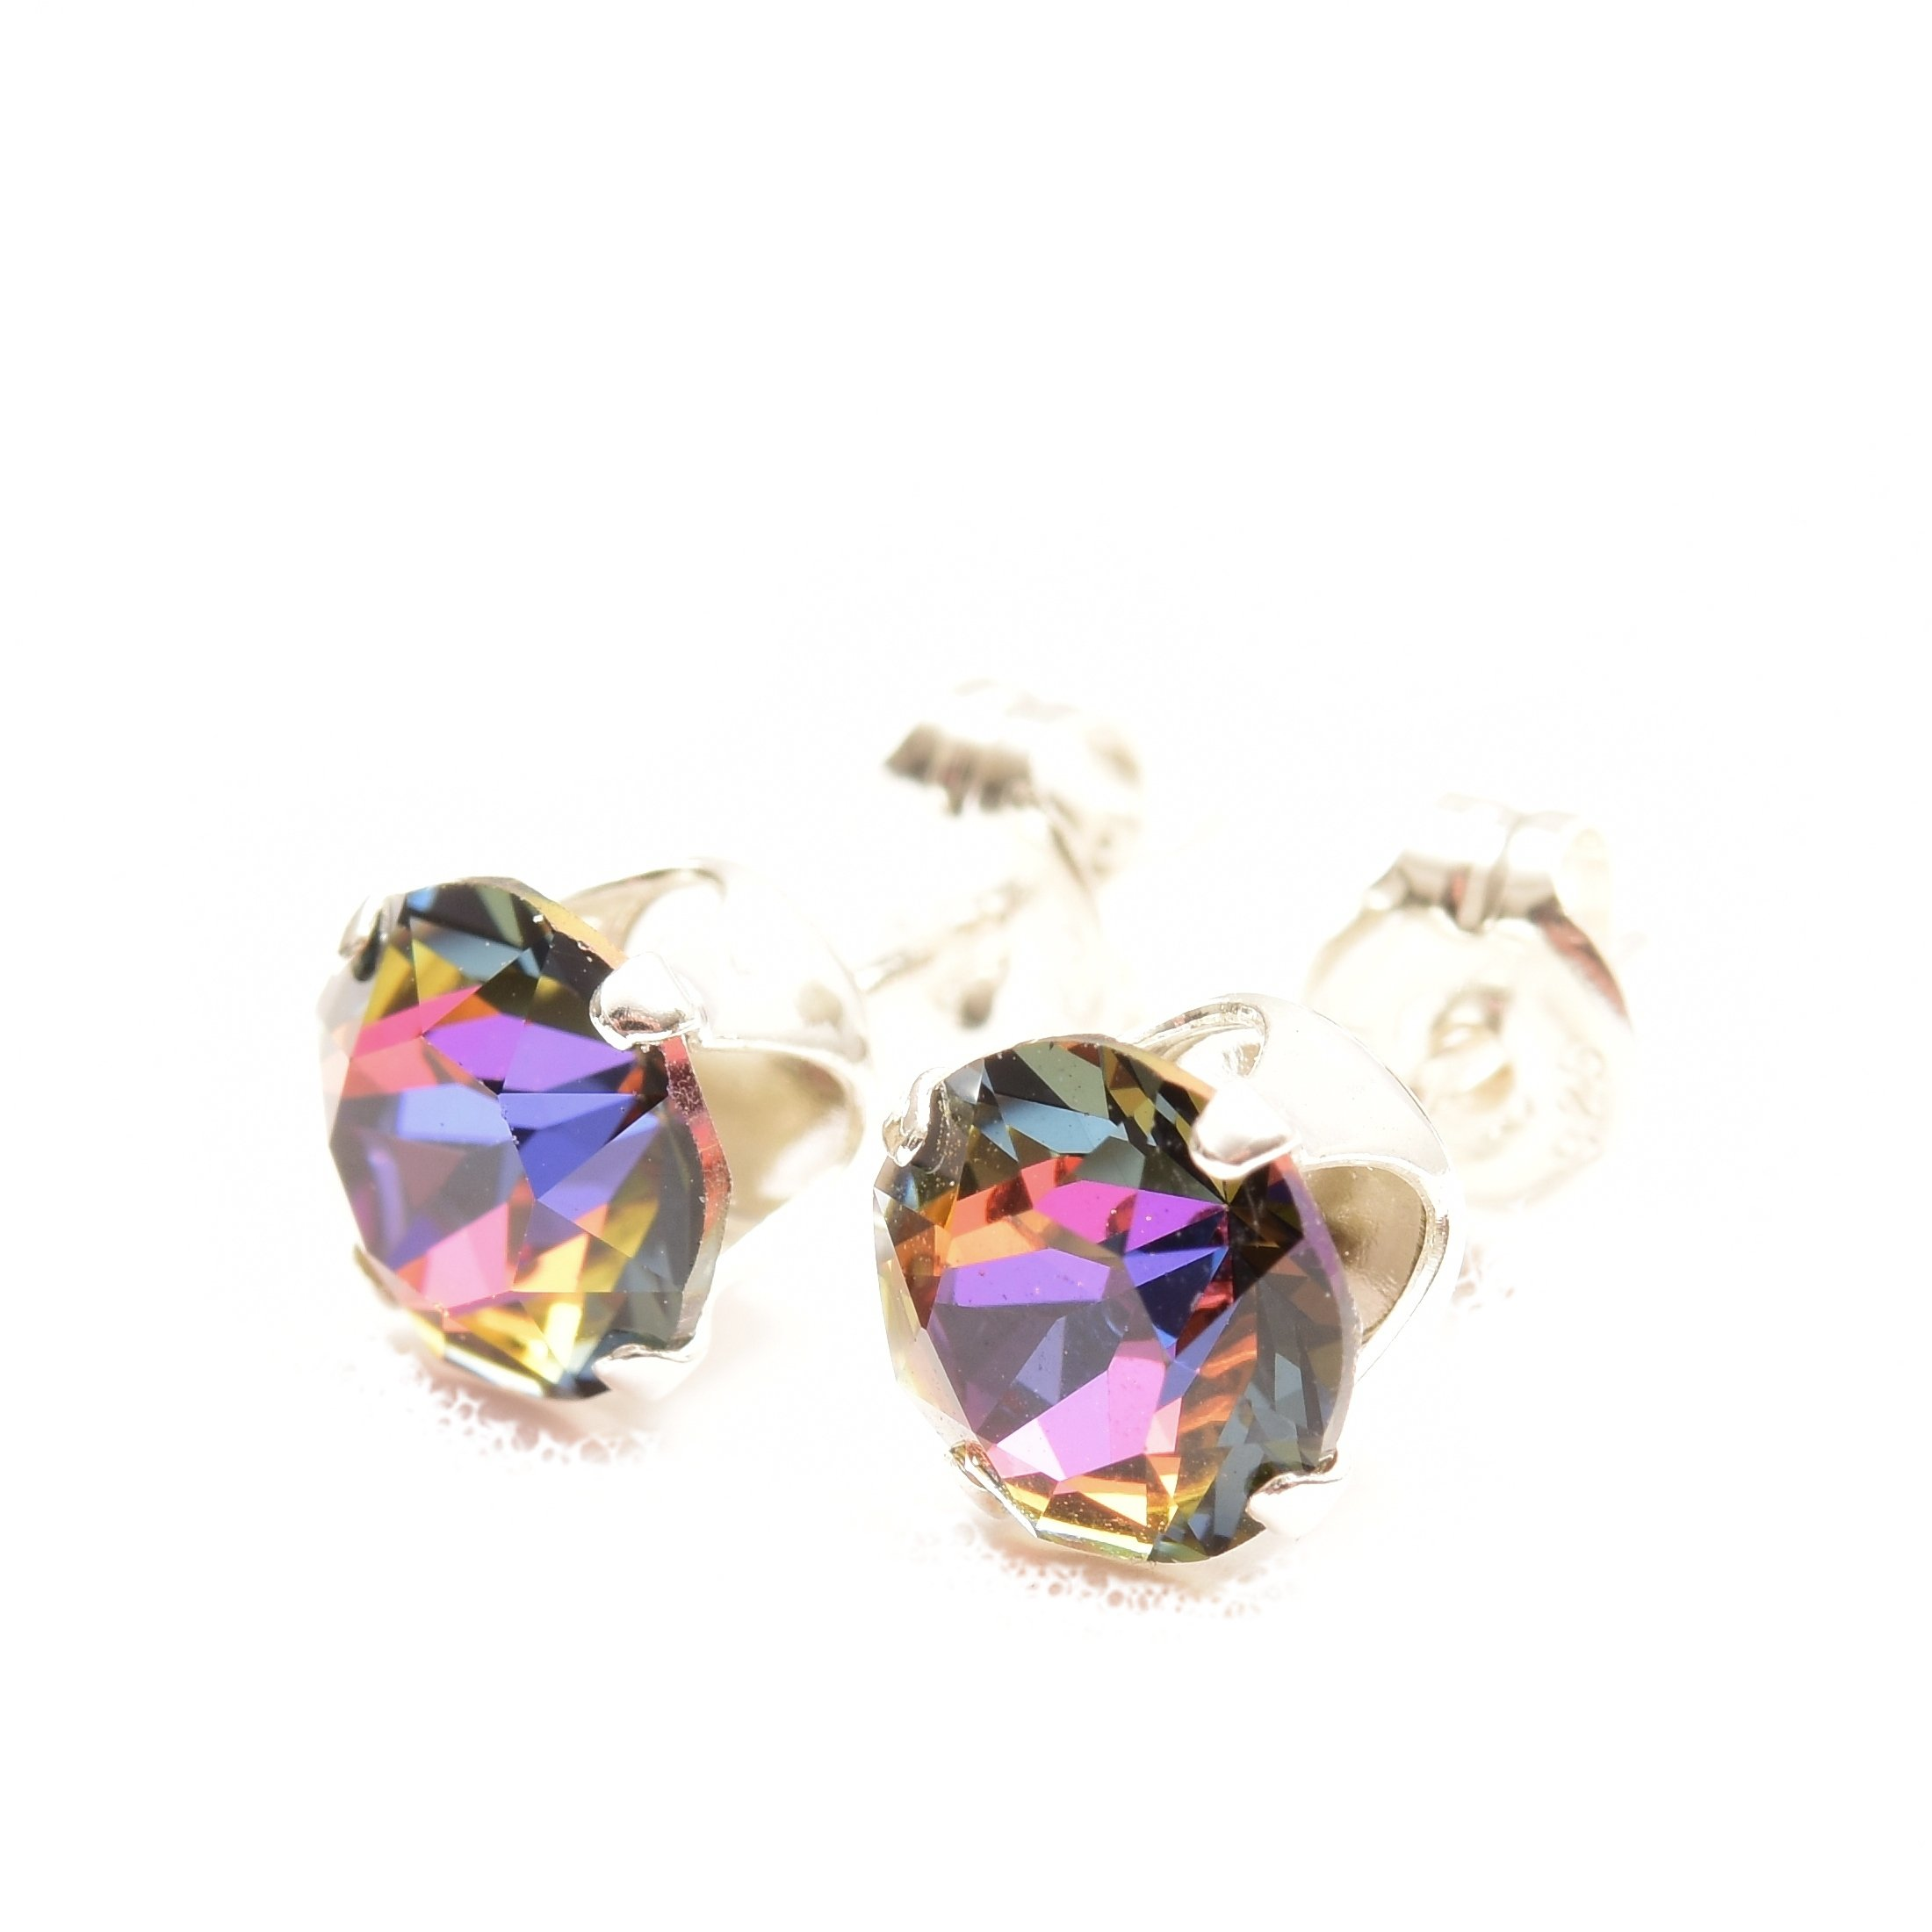 925 Sterling Silver stud earrings for women made with